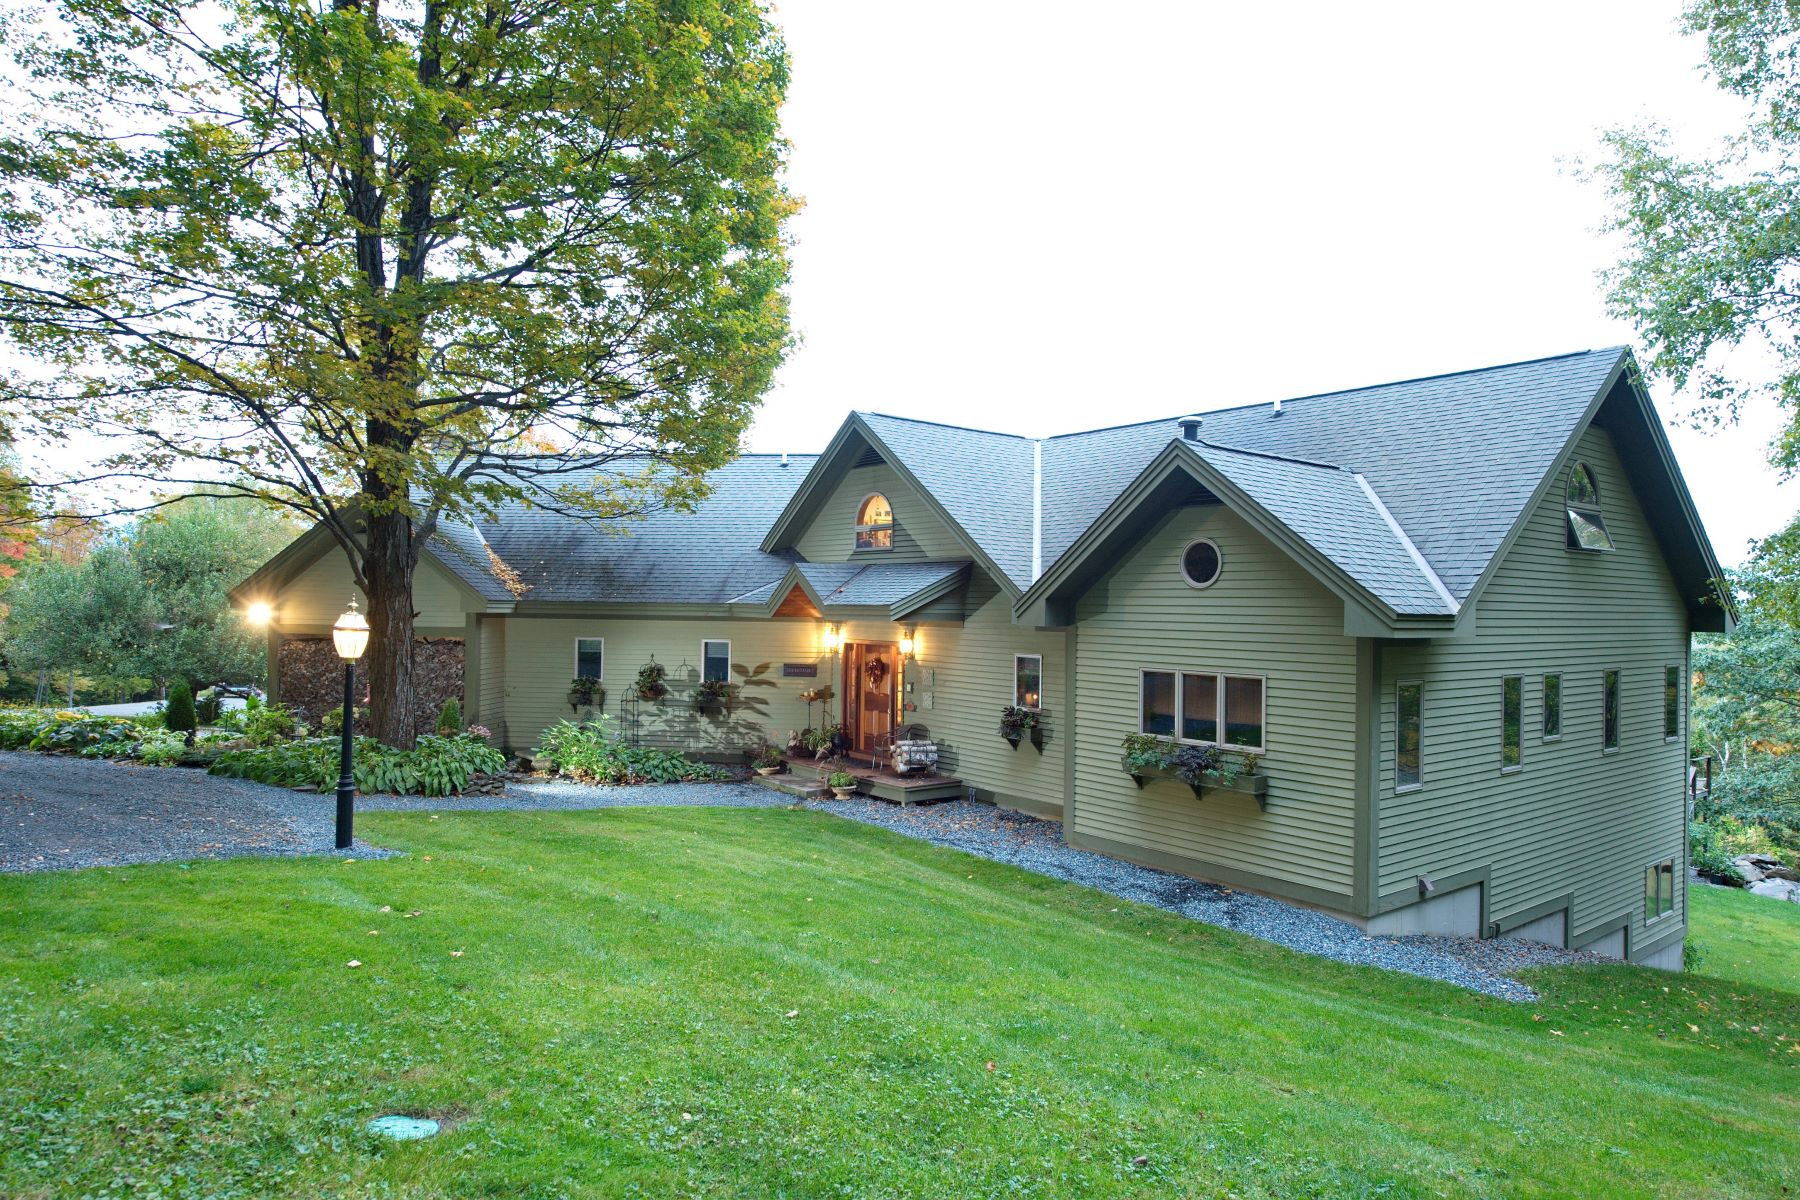 Single Family Homes for Sale at Post and Beam Home on 59 Acres in Weathersfield 482 Skyline Dr Weathersfield, Vermont 05156 United States